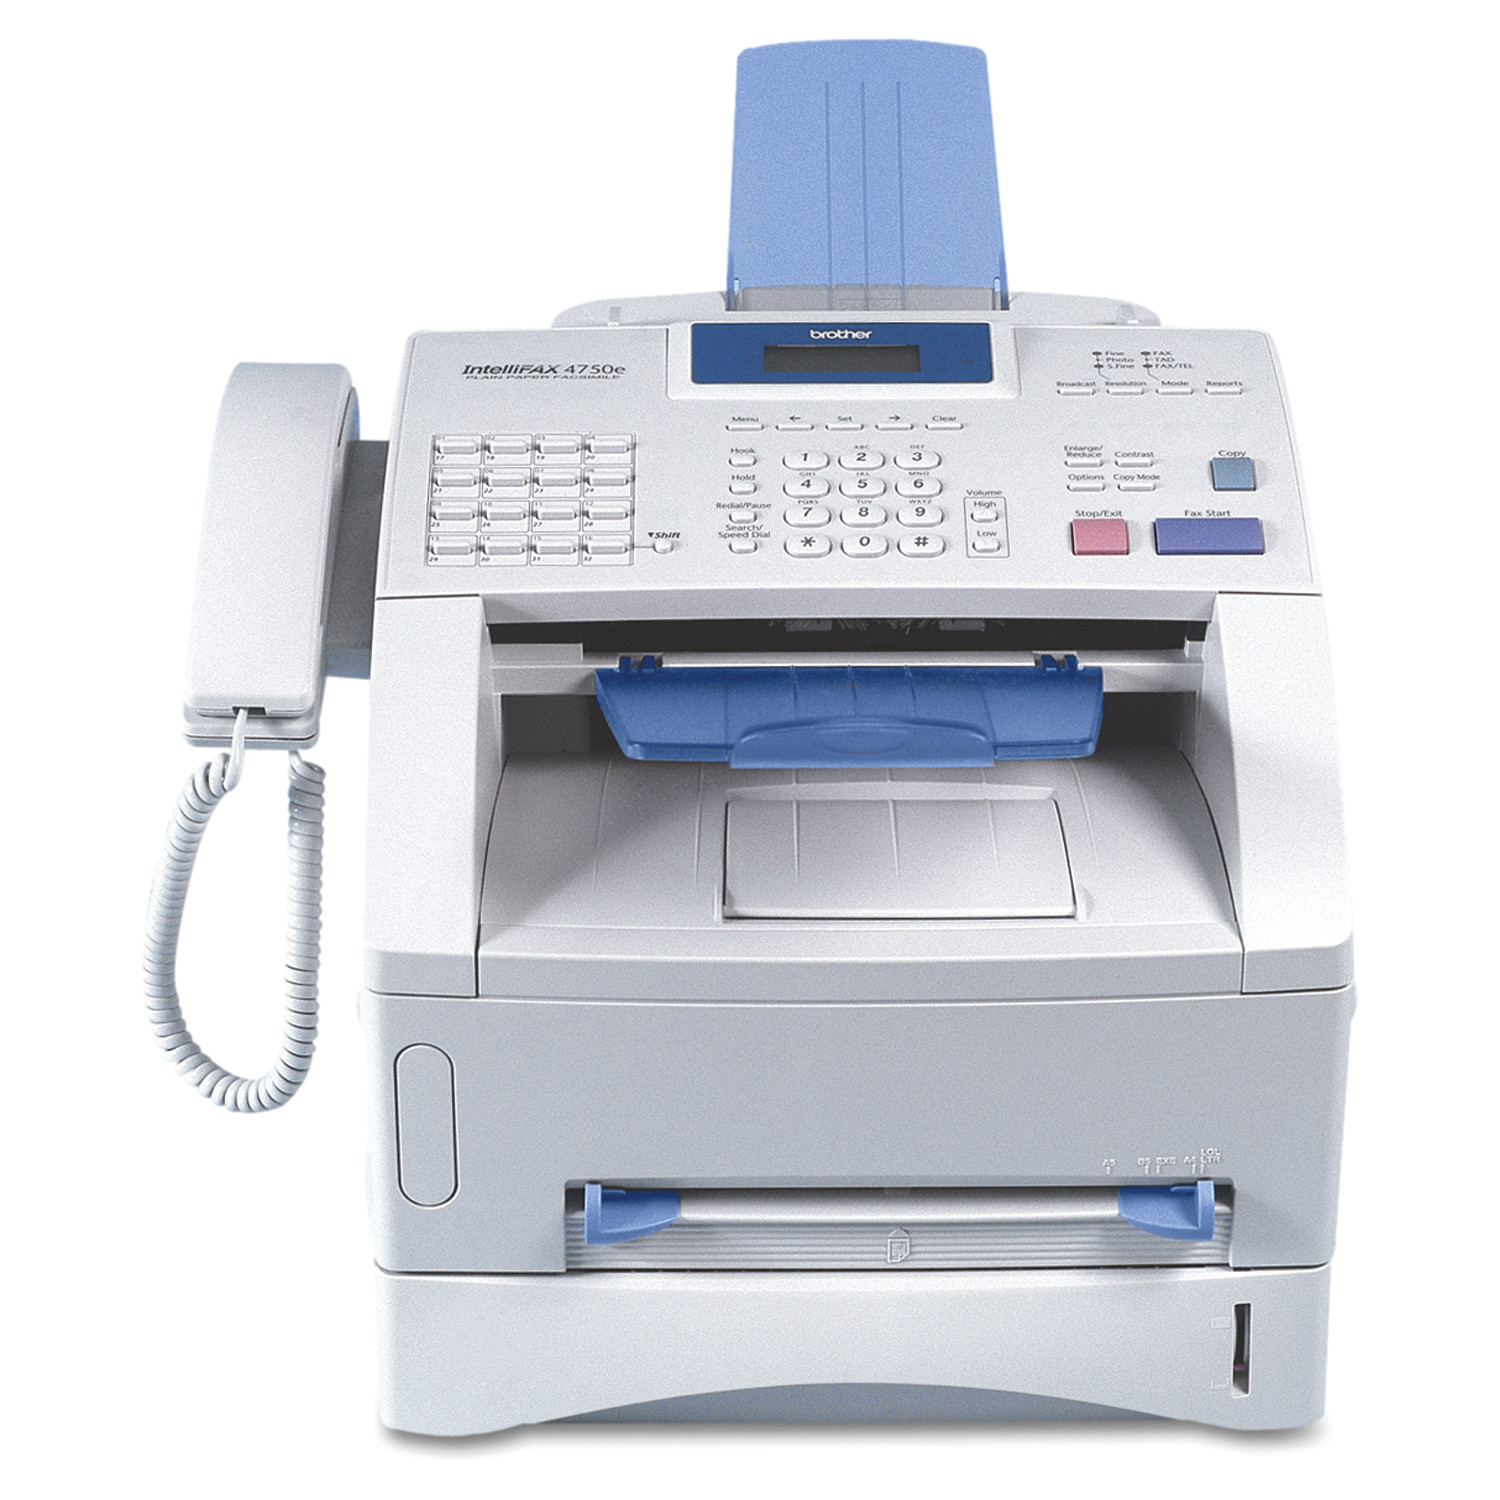 Brother intelliFAX-4750e Business-Class Laser Fax Machine, Copy Fax Print by Brother